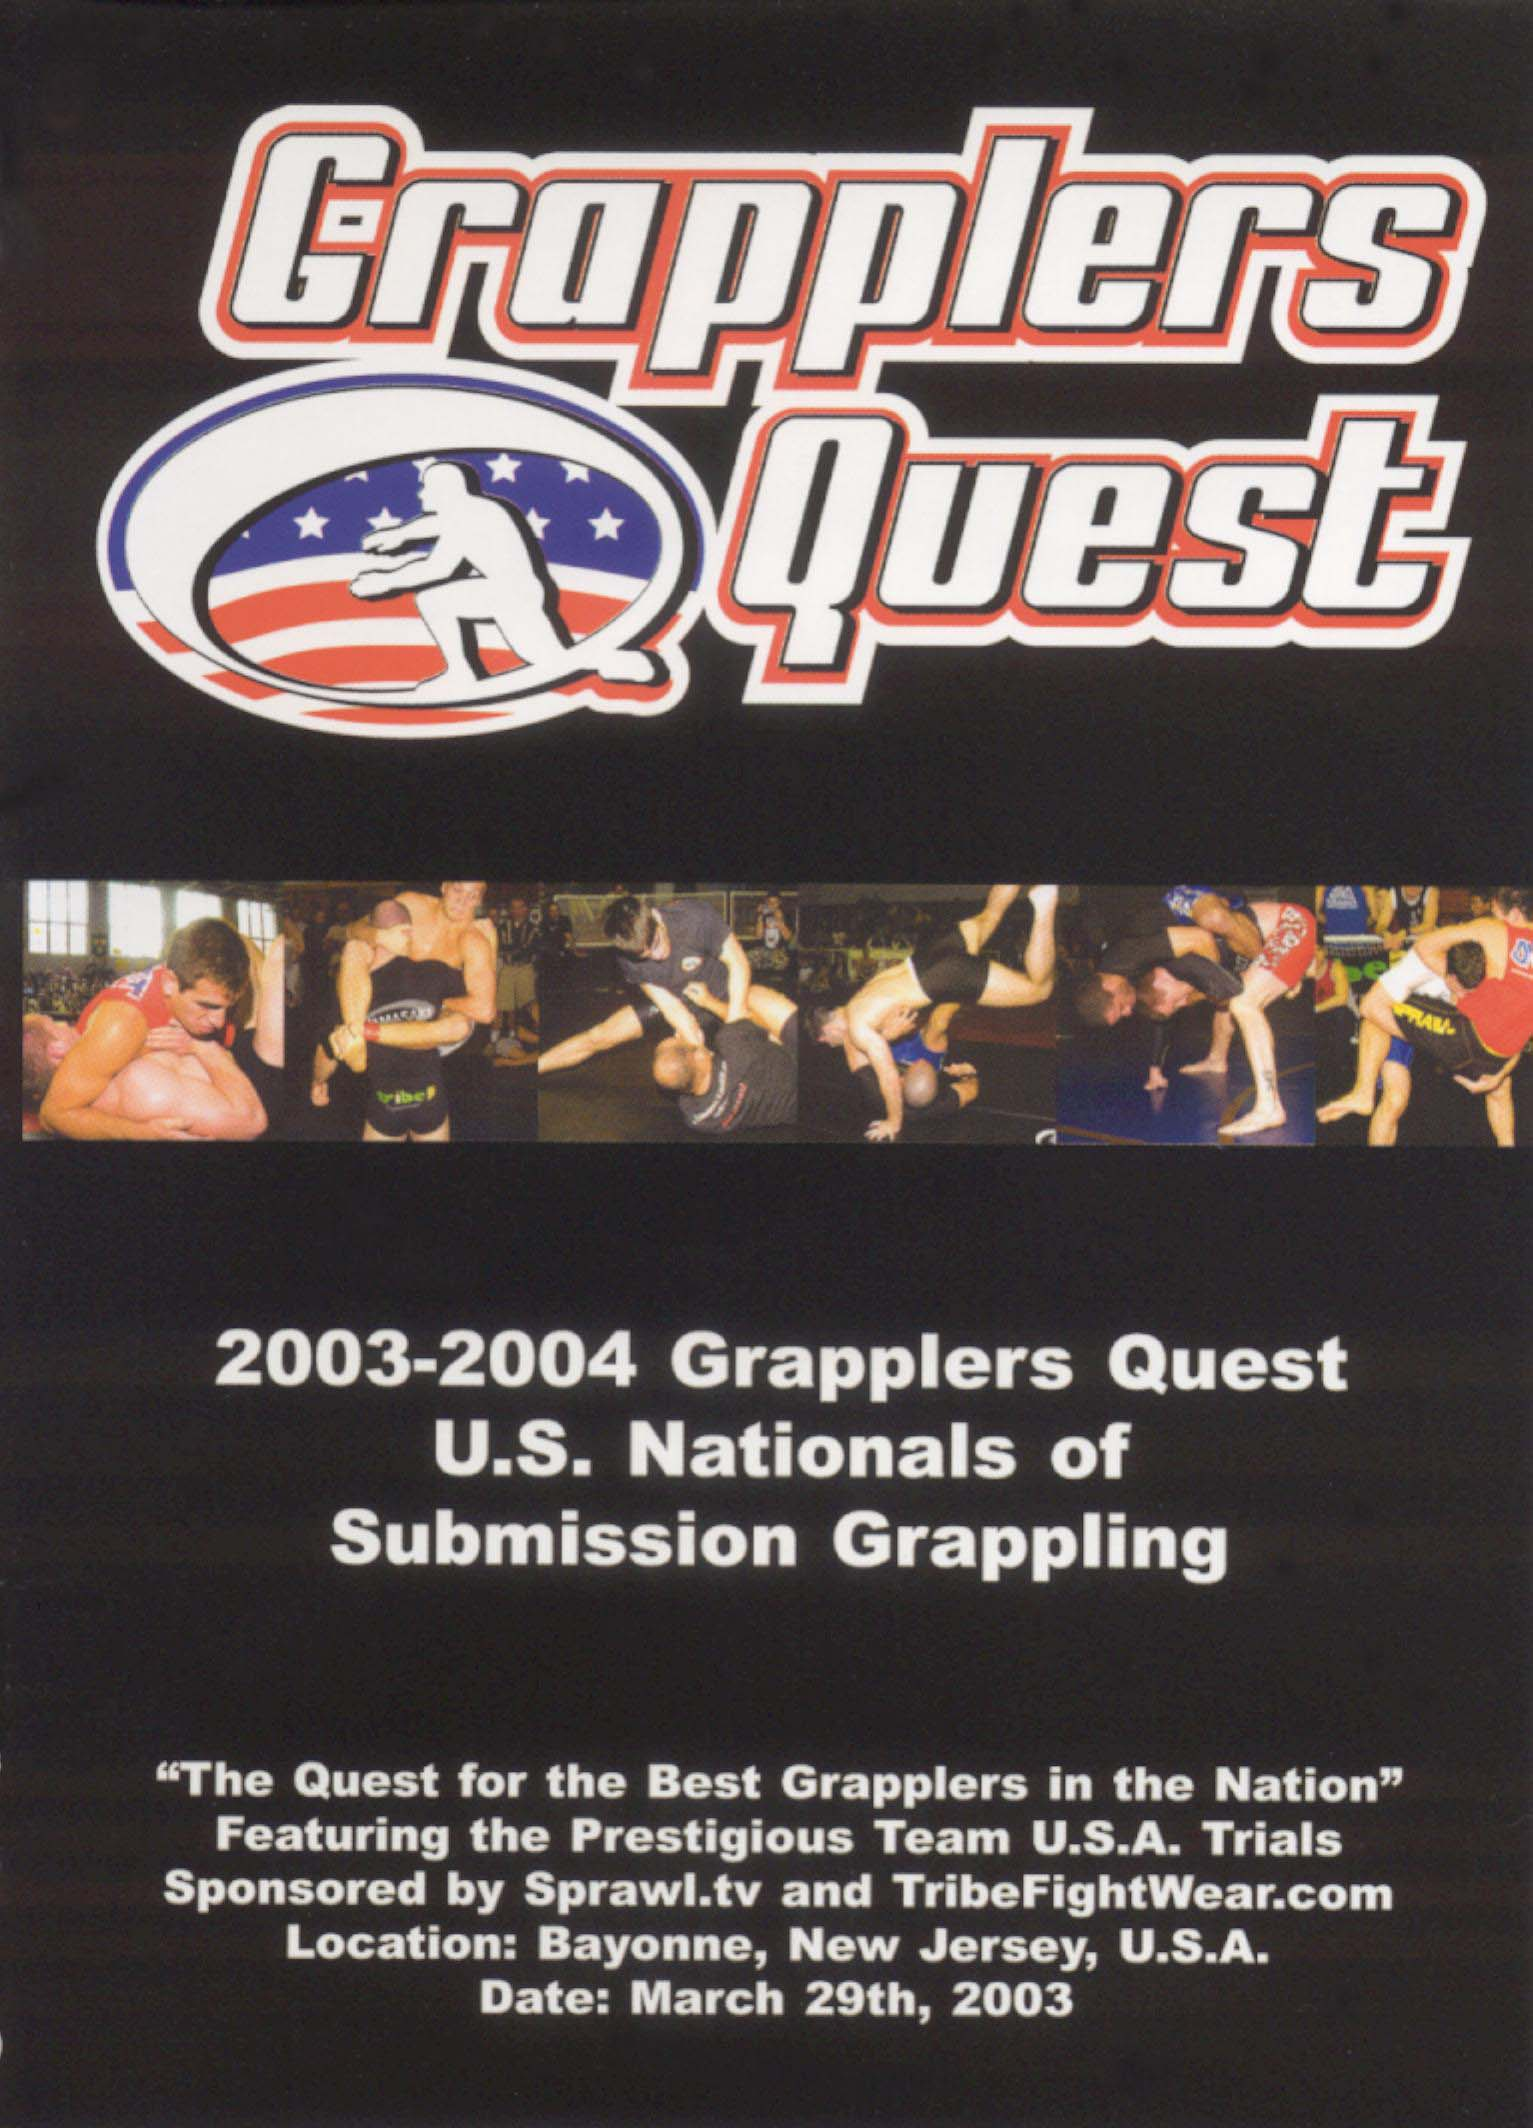 Grapplers Quest: 2003-2004 U.S. Nationals of Submission Grappling